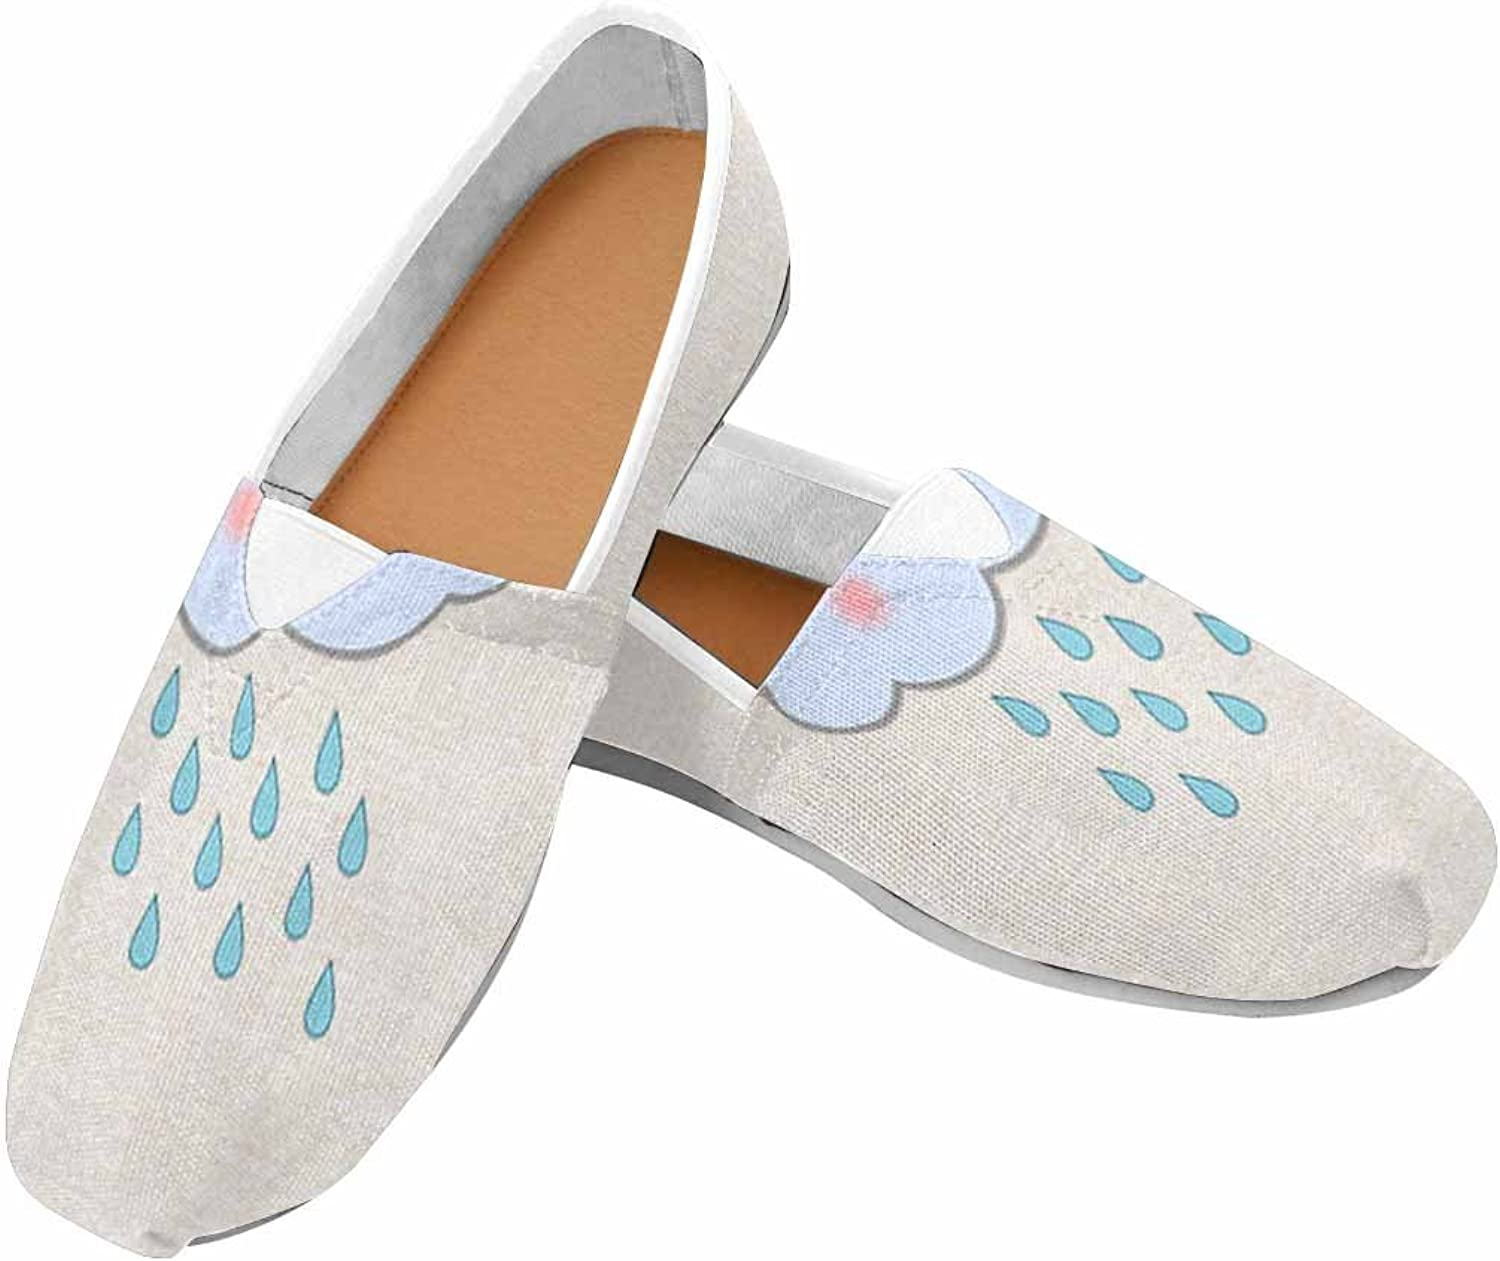 Womens Canvas shoes with Floral Print Fashion Slip-On Casual Sneakers shoes